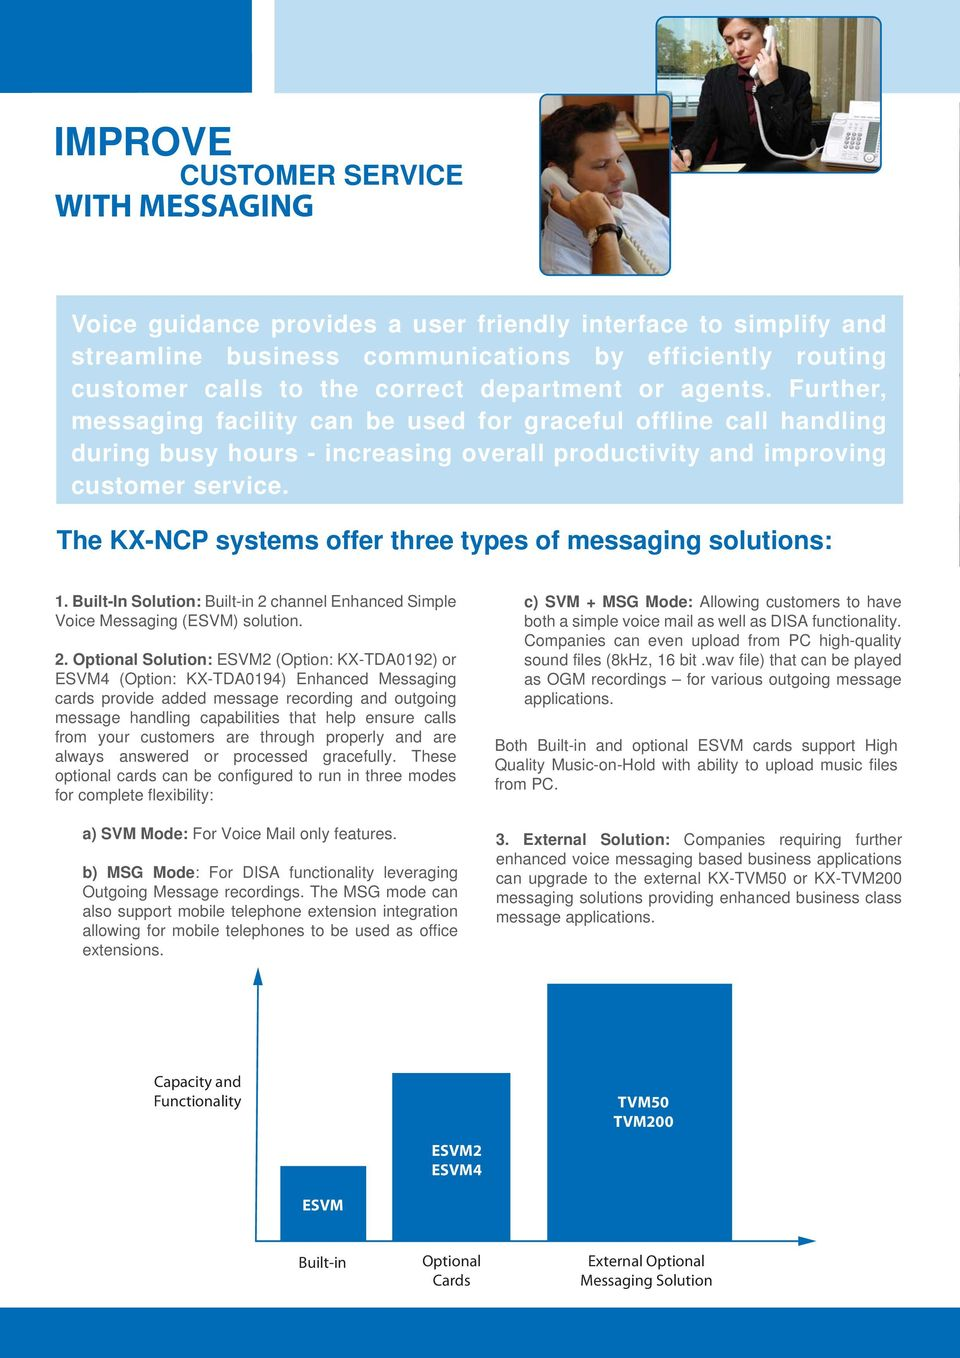 The KX-NCP systems offer three types of messaging solutions: 1. Built-In Solution: Built-in 2